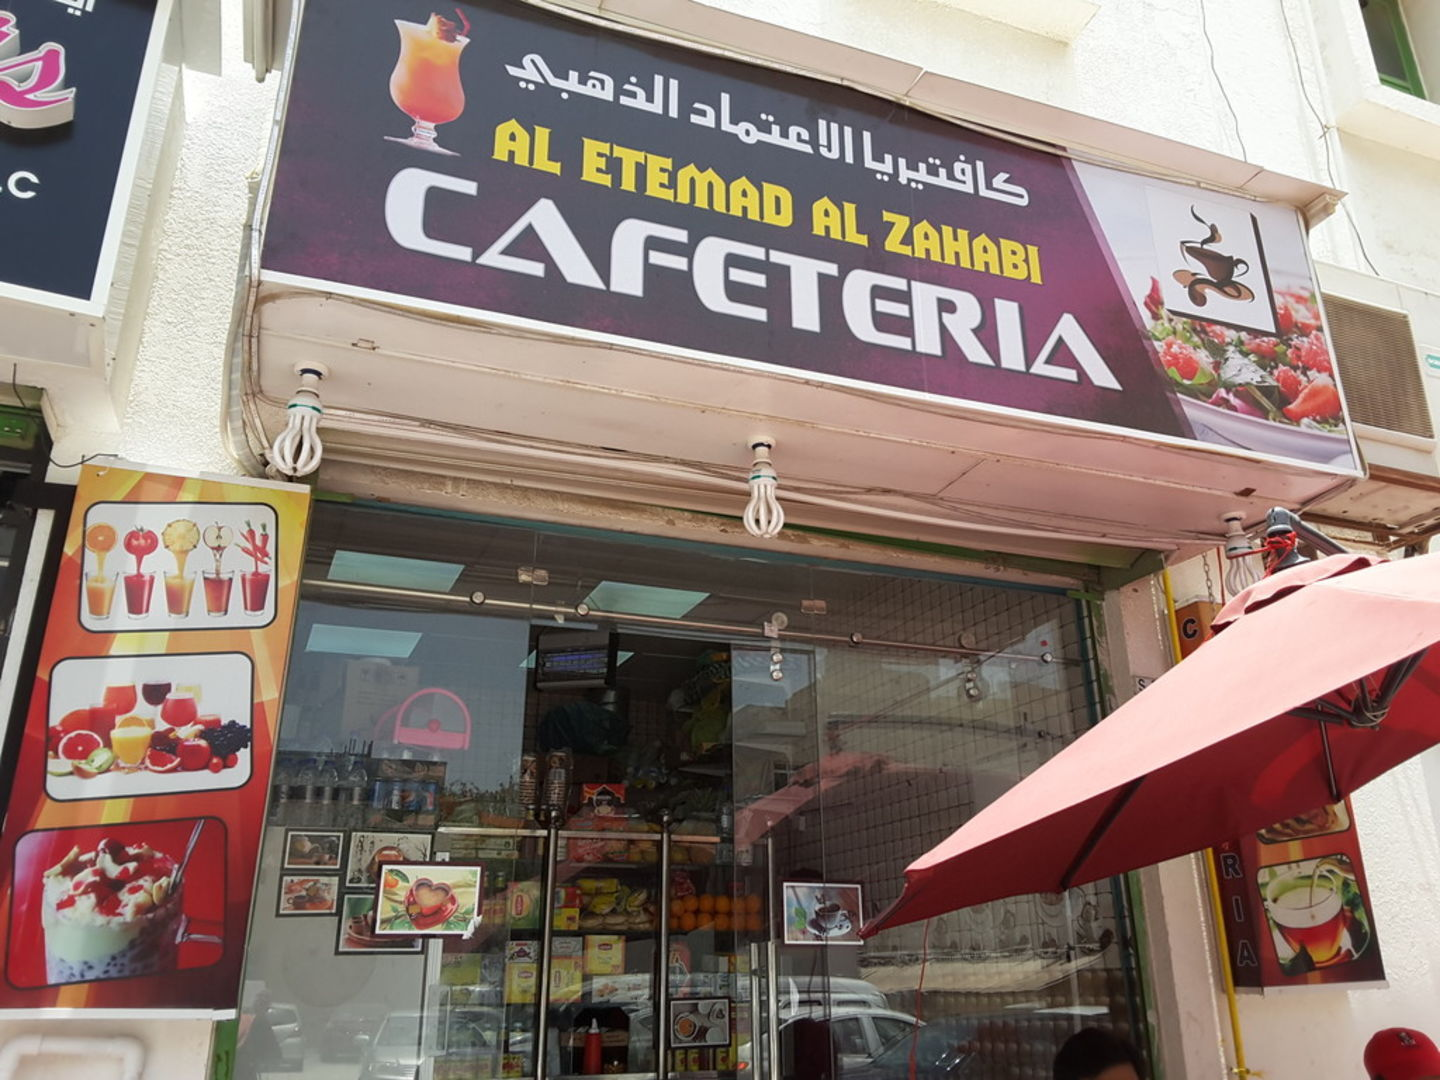 Walif-business-smaak-cafeteria